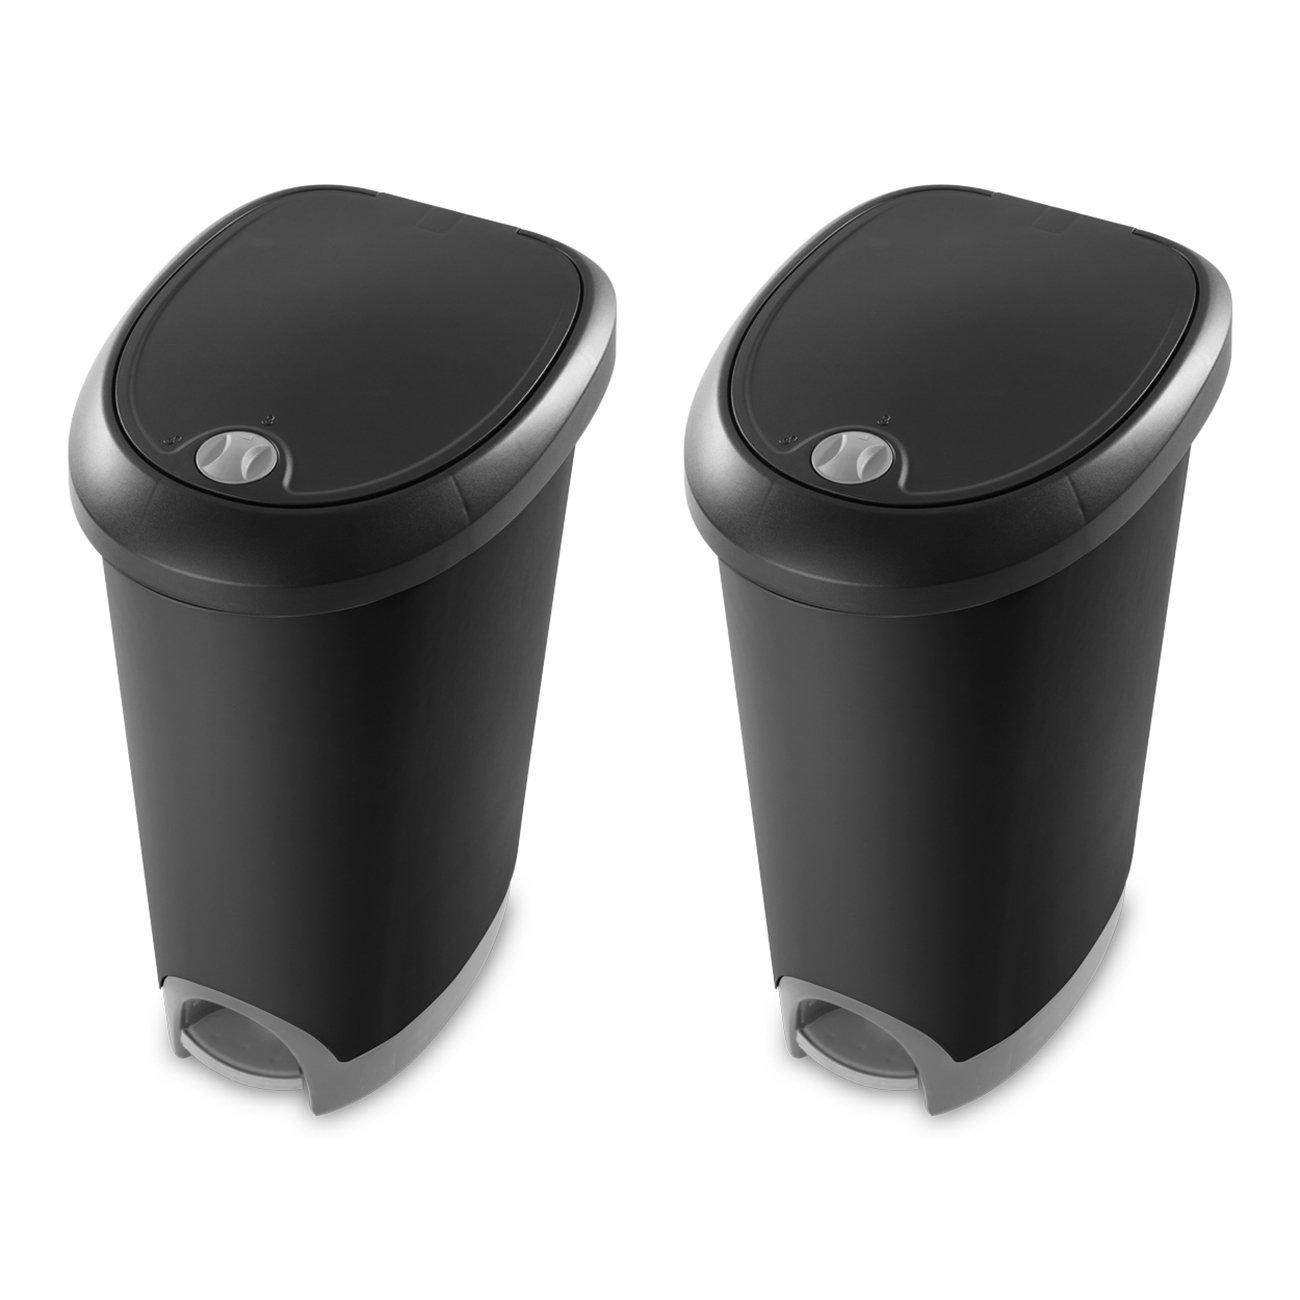 Sterilite 12.6 Gallon Locking StepOn Wastebasket, Black (2 Pack) | 10739002 by STERILITE